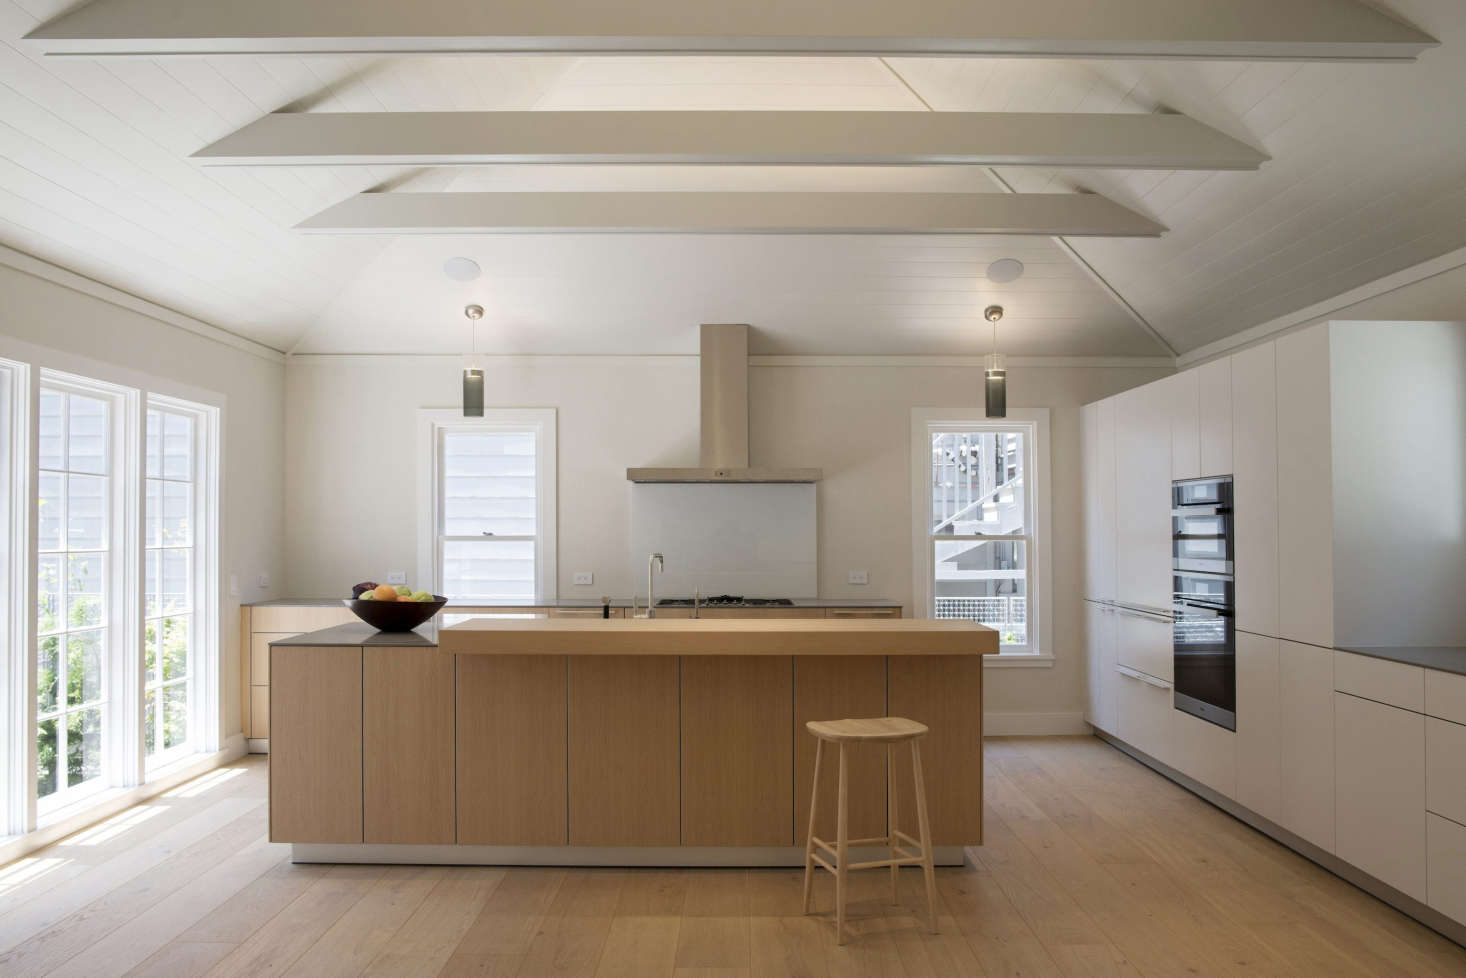 designing a kitchen how to build outdoor expert advice an architect s 15 essential tips for the with cathedral ceilings and shiplap paneling in san francisco filbert cottages reenvisioned by